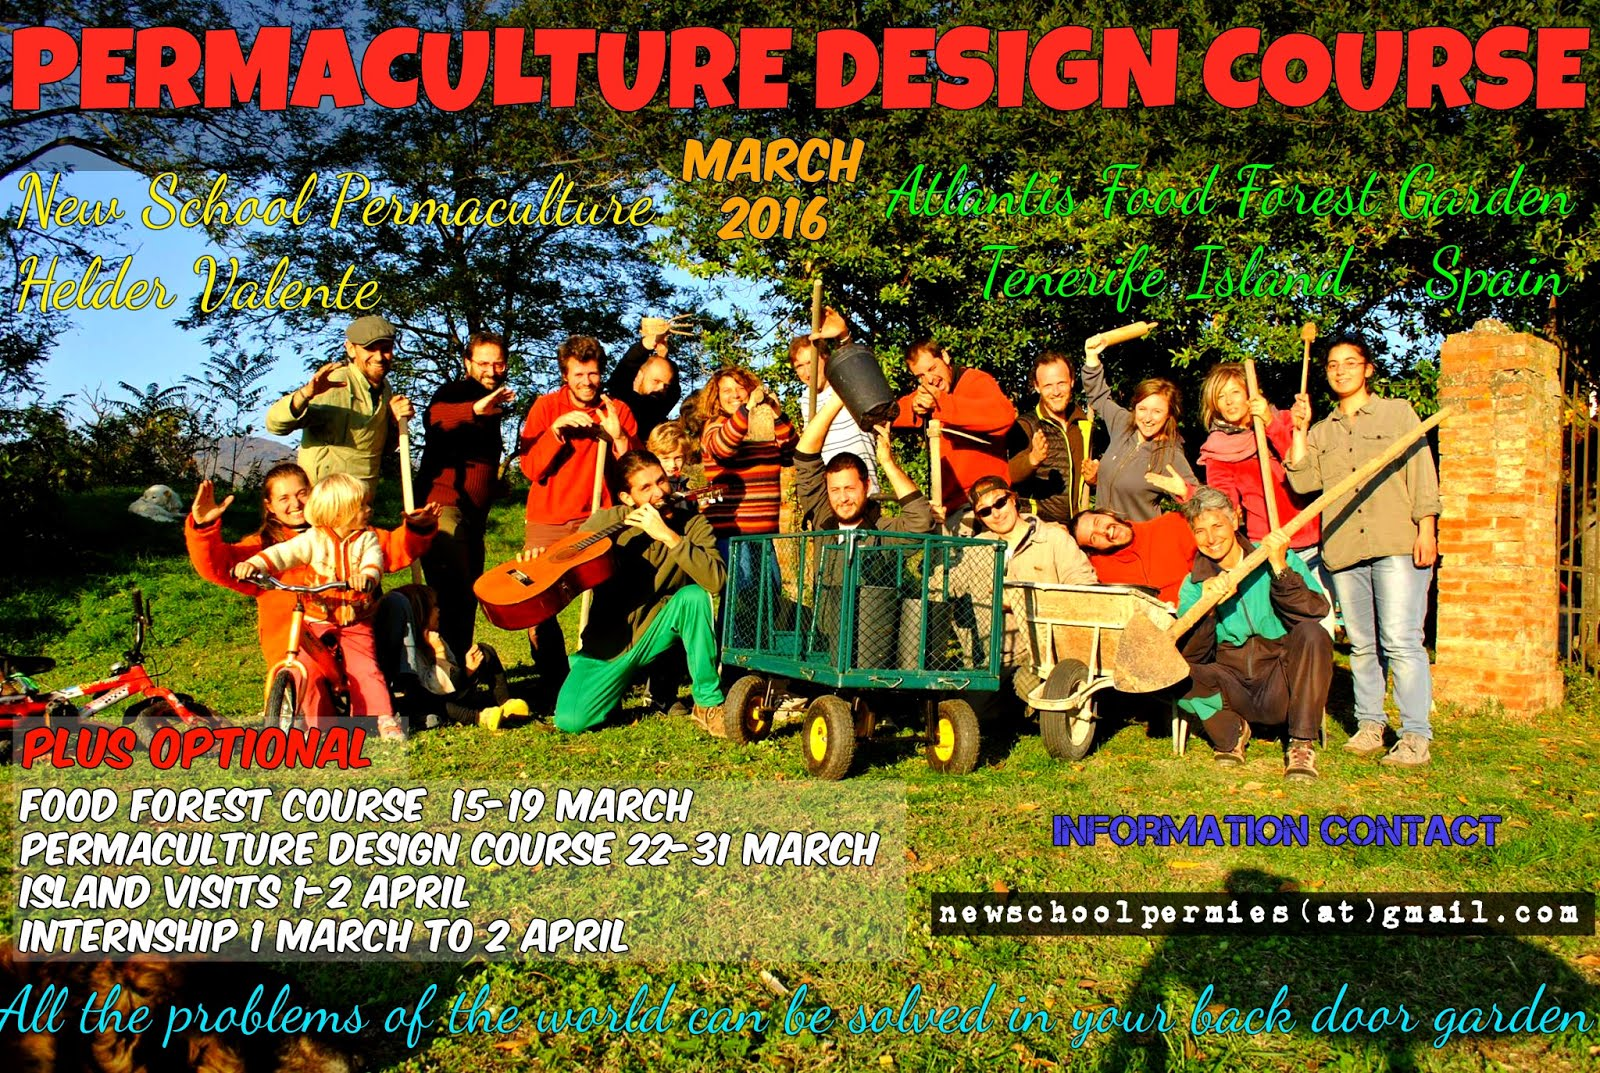 Permaculture design course March